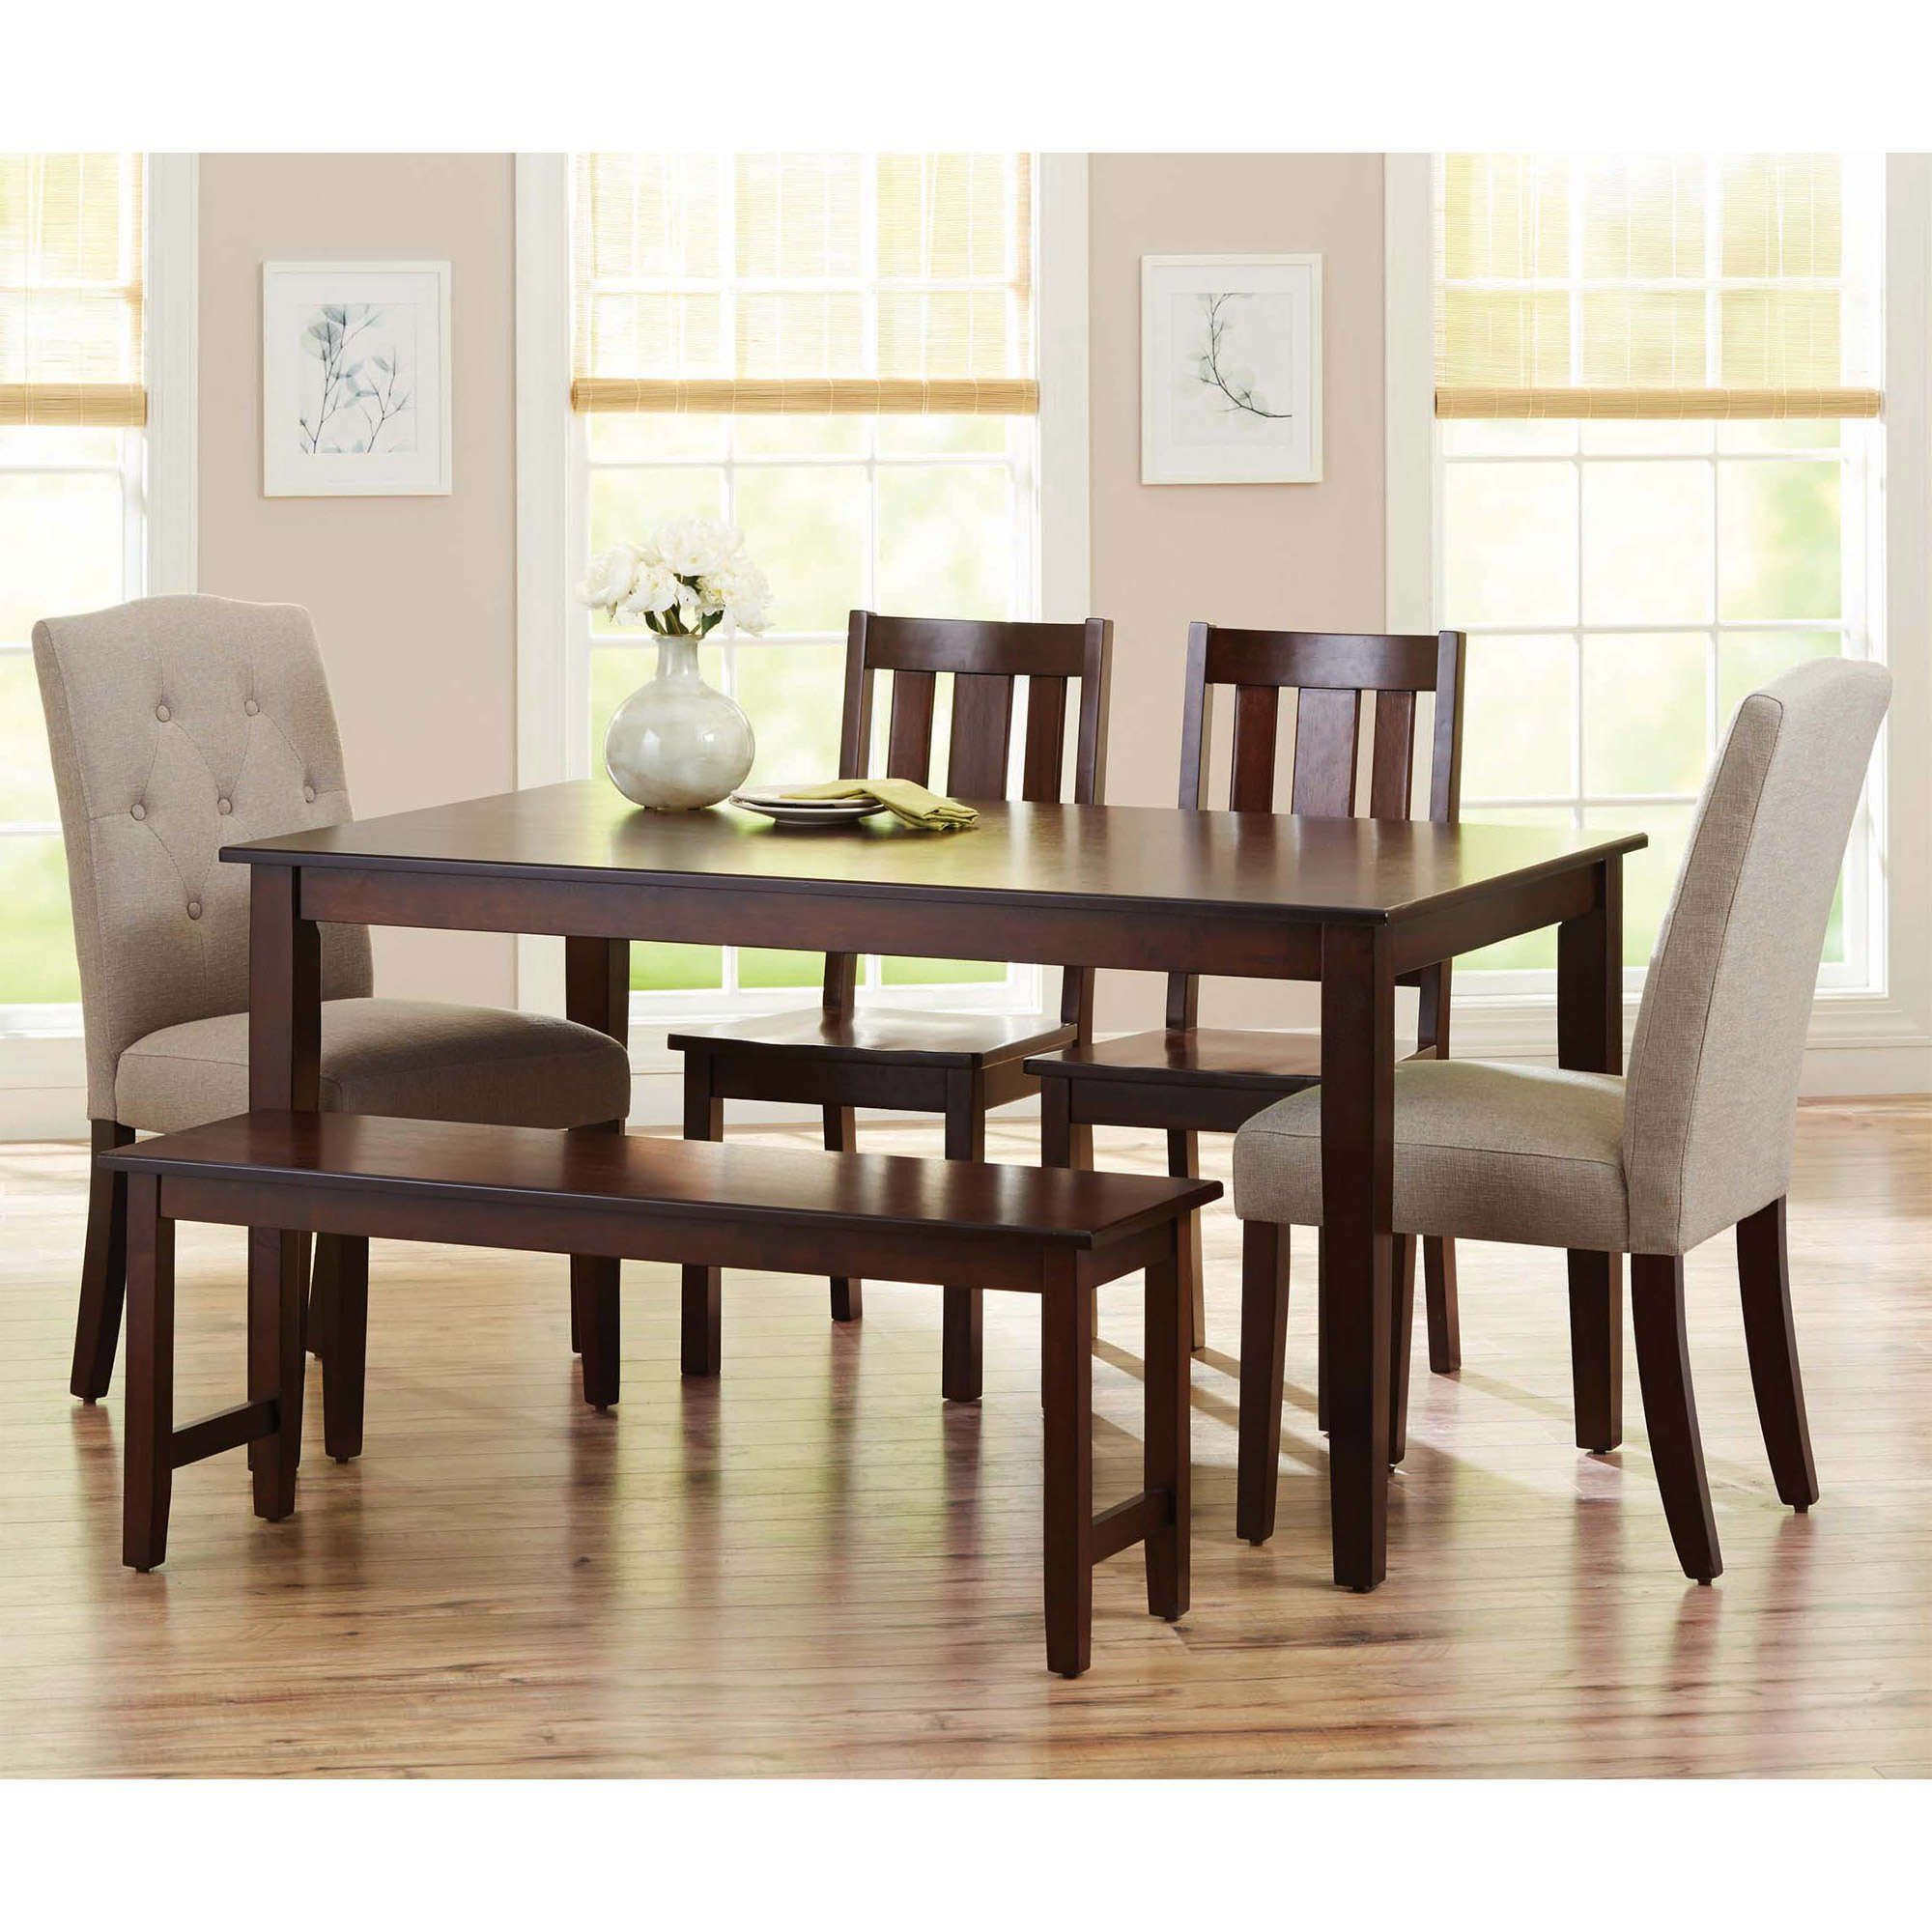 Better Homes Gardens Bankston Dining Table Multiple Finishes Walmart Com In 2021 Classic Dining Room Dining Room Table Set Modern Dining Table